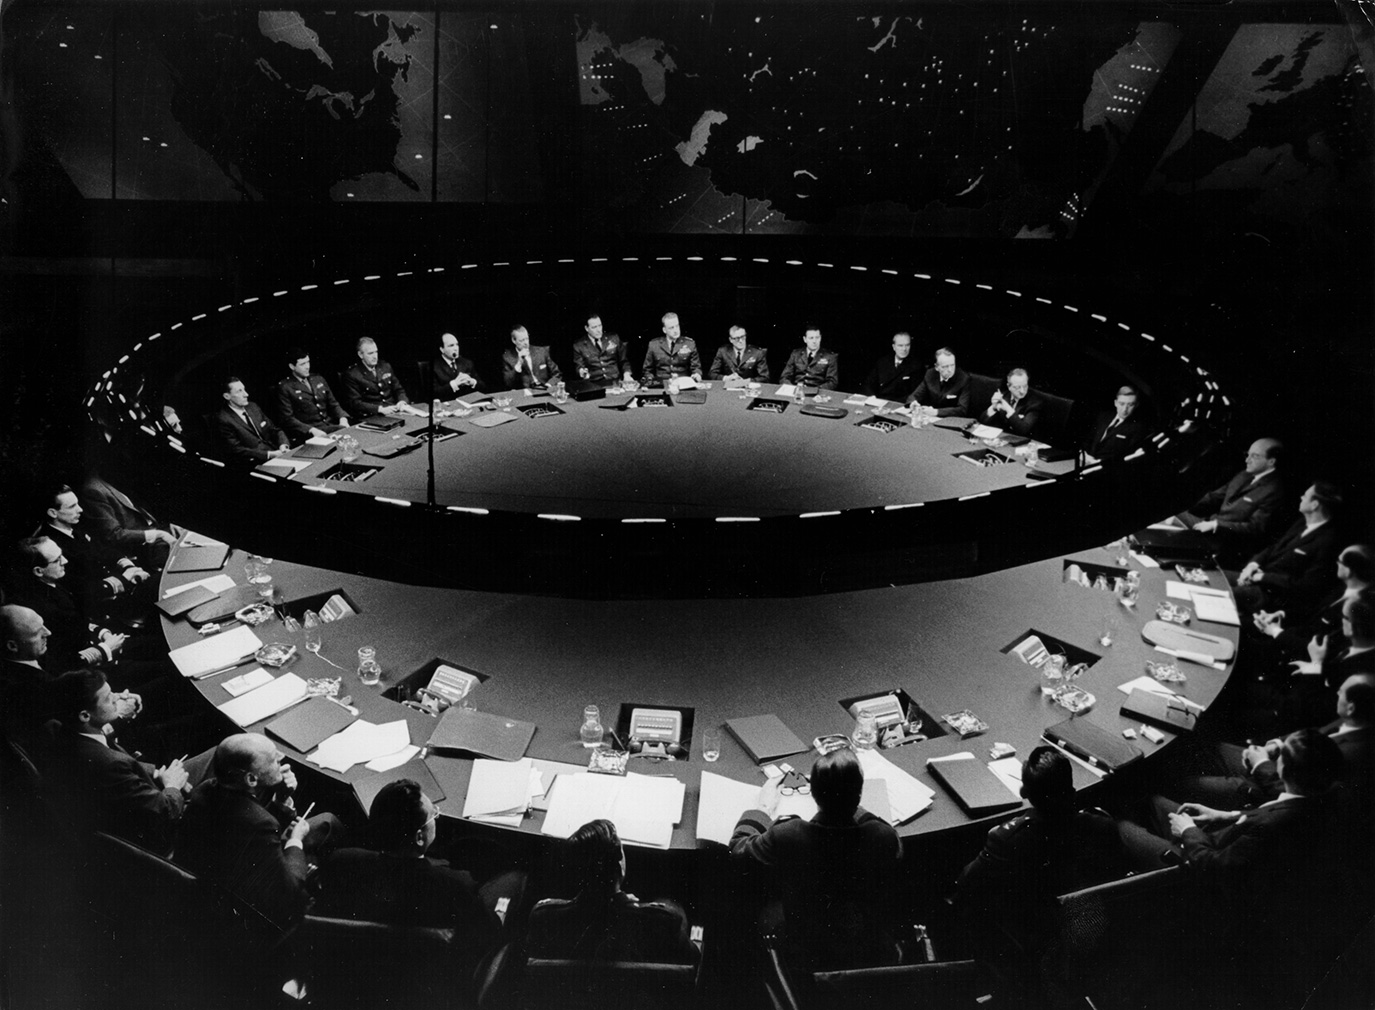 The War Room set fro Dr Strangelove (c) The Stanley Kubrick Archive